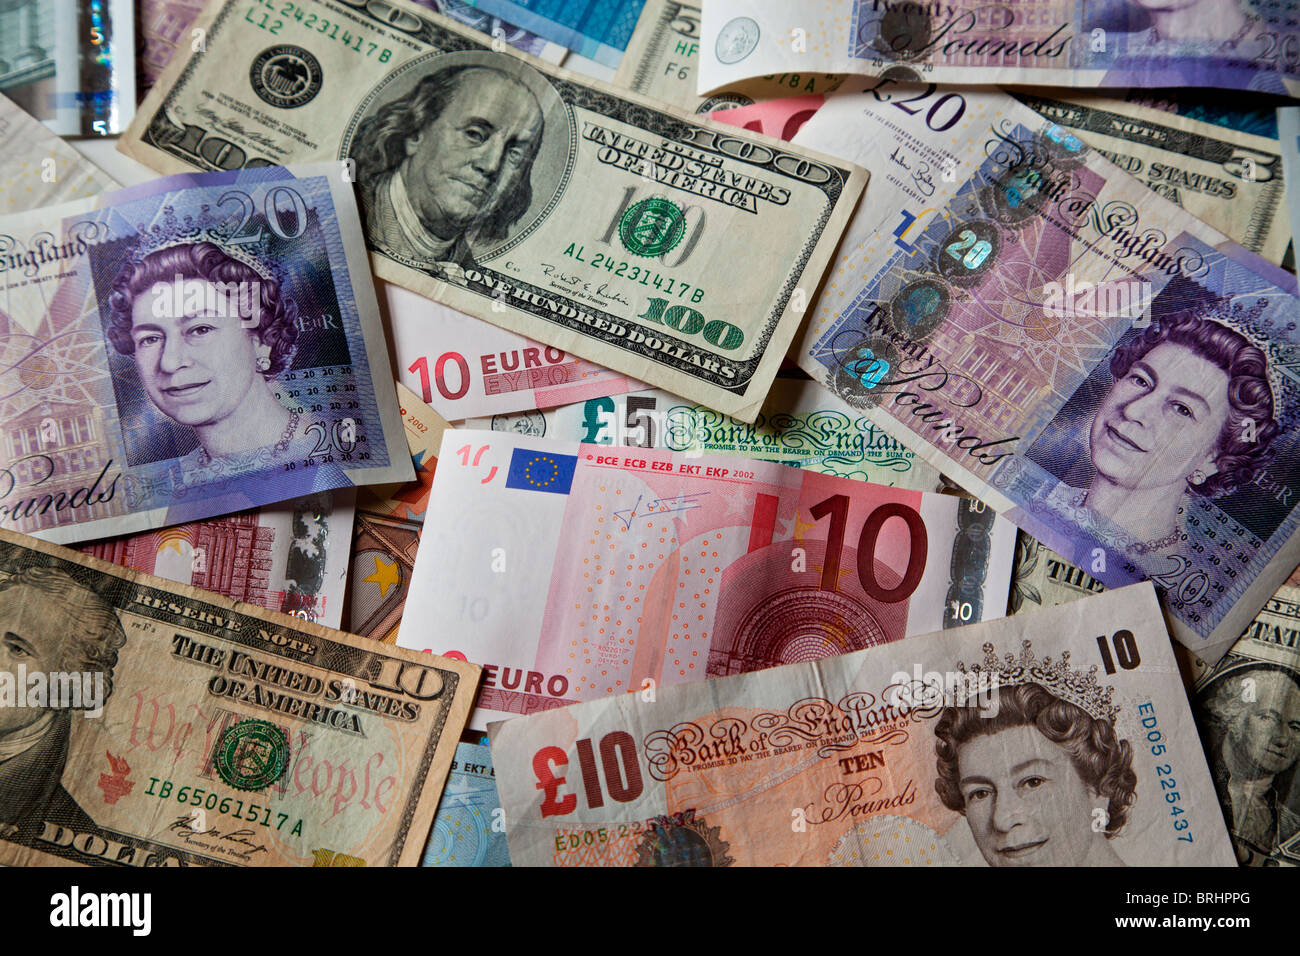 1 Libra Euros Currencies Notes Stock Photos Currencies Notes Stock Images Alamy